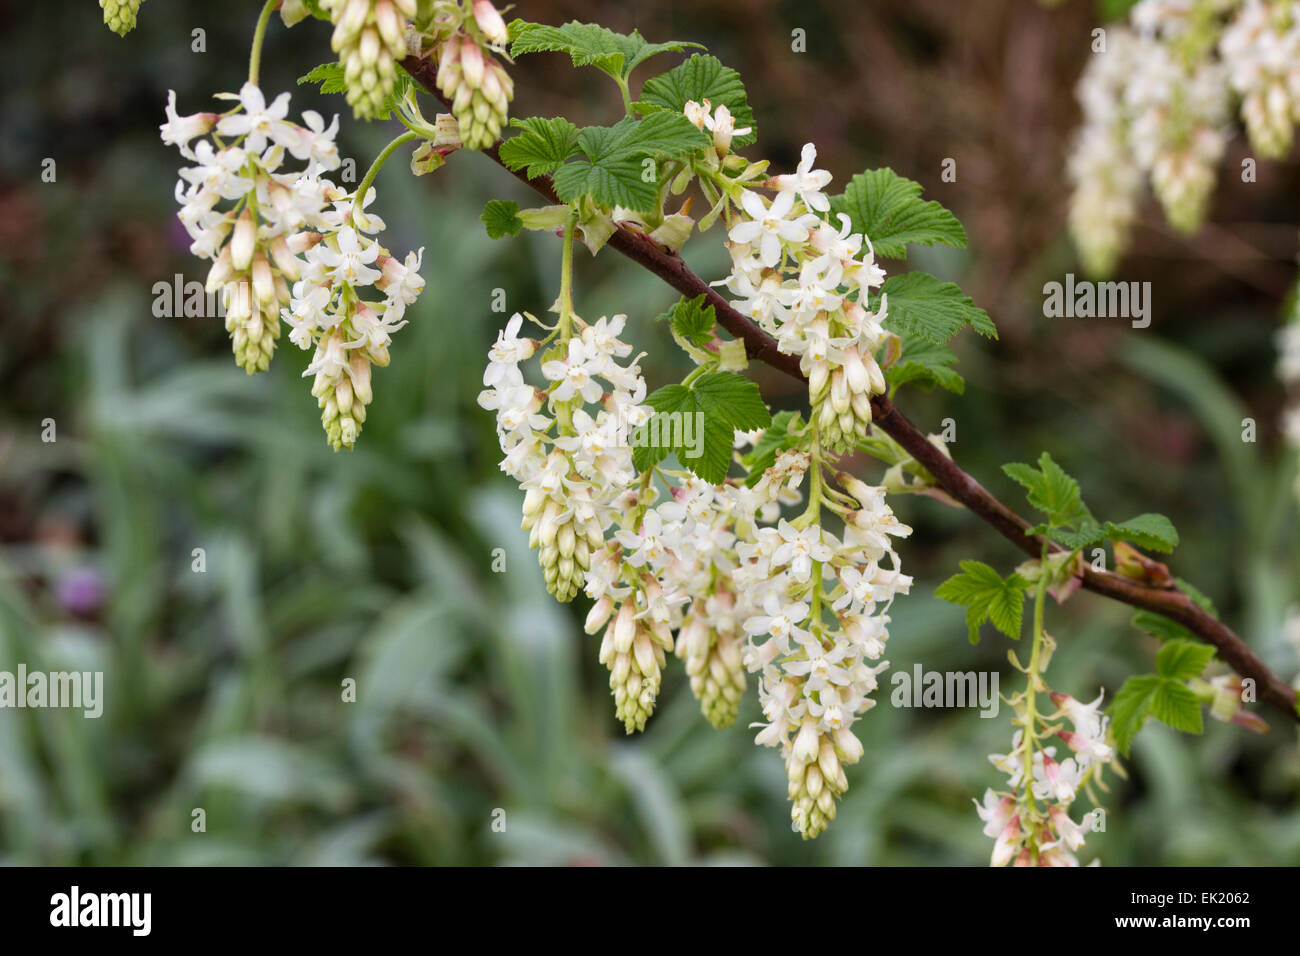 White flowers of the early spring flowering currant ribes white flowers of the early spring flowering currant ribes sanguineum white icicle mightylinksfo